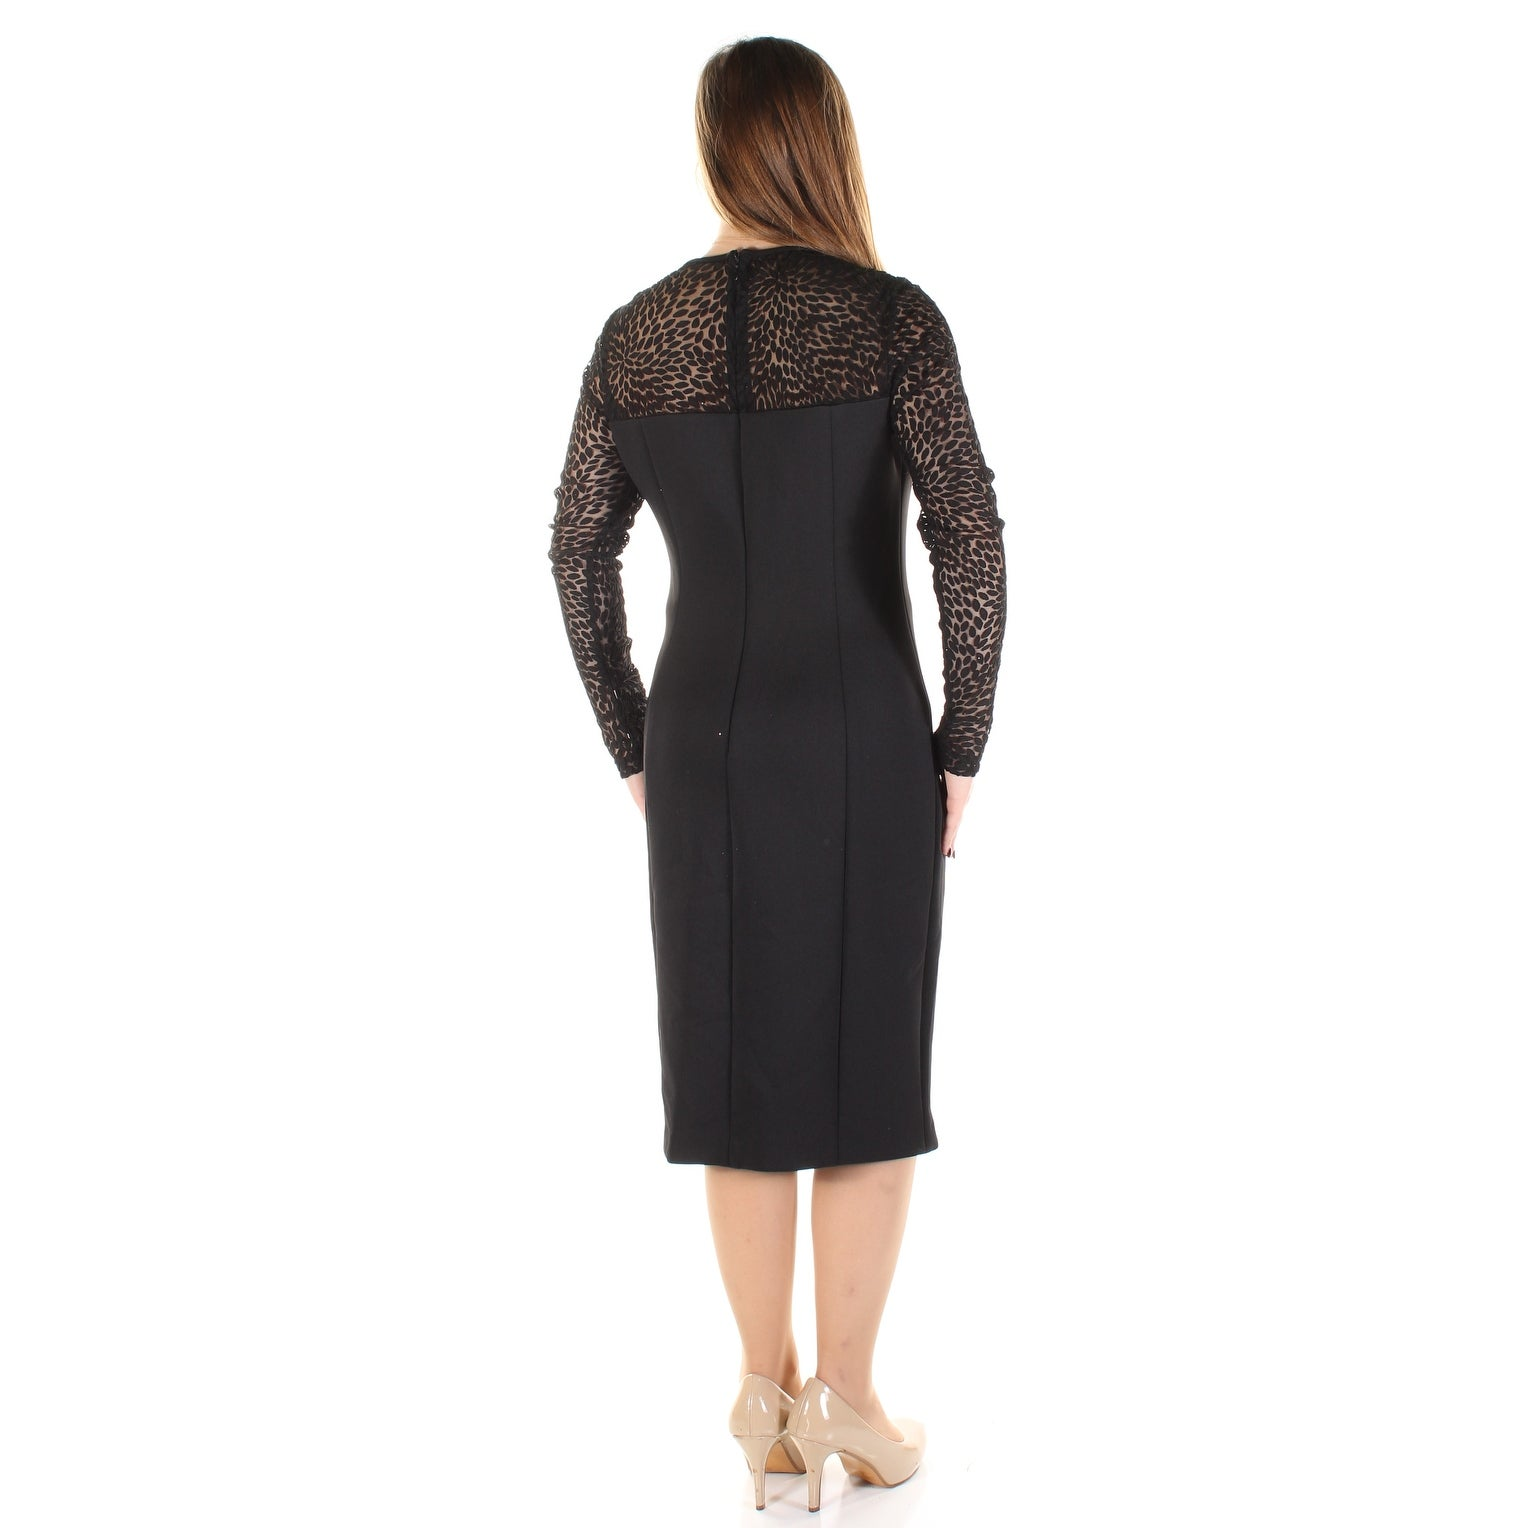 8f5e2a55c72 Shop CALVIN KLEIN Womens Black Lace Animal Print Long Sleeve Illusion  Neckline Below The Knee Sheath Cocktail Dress Size  8 - Free Shipping Today  ...